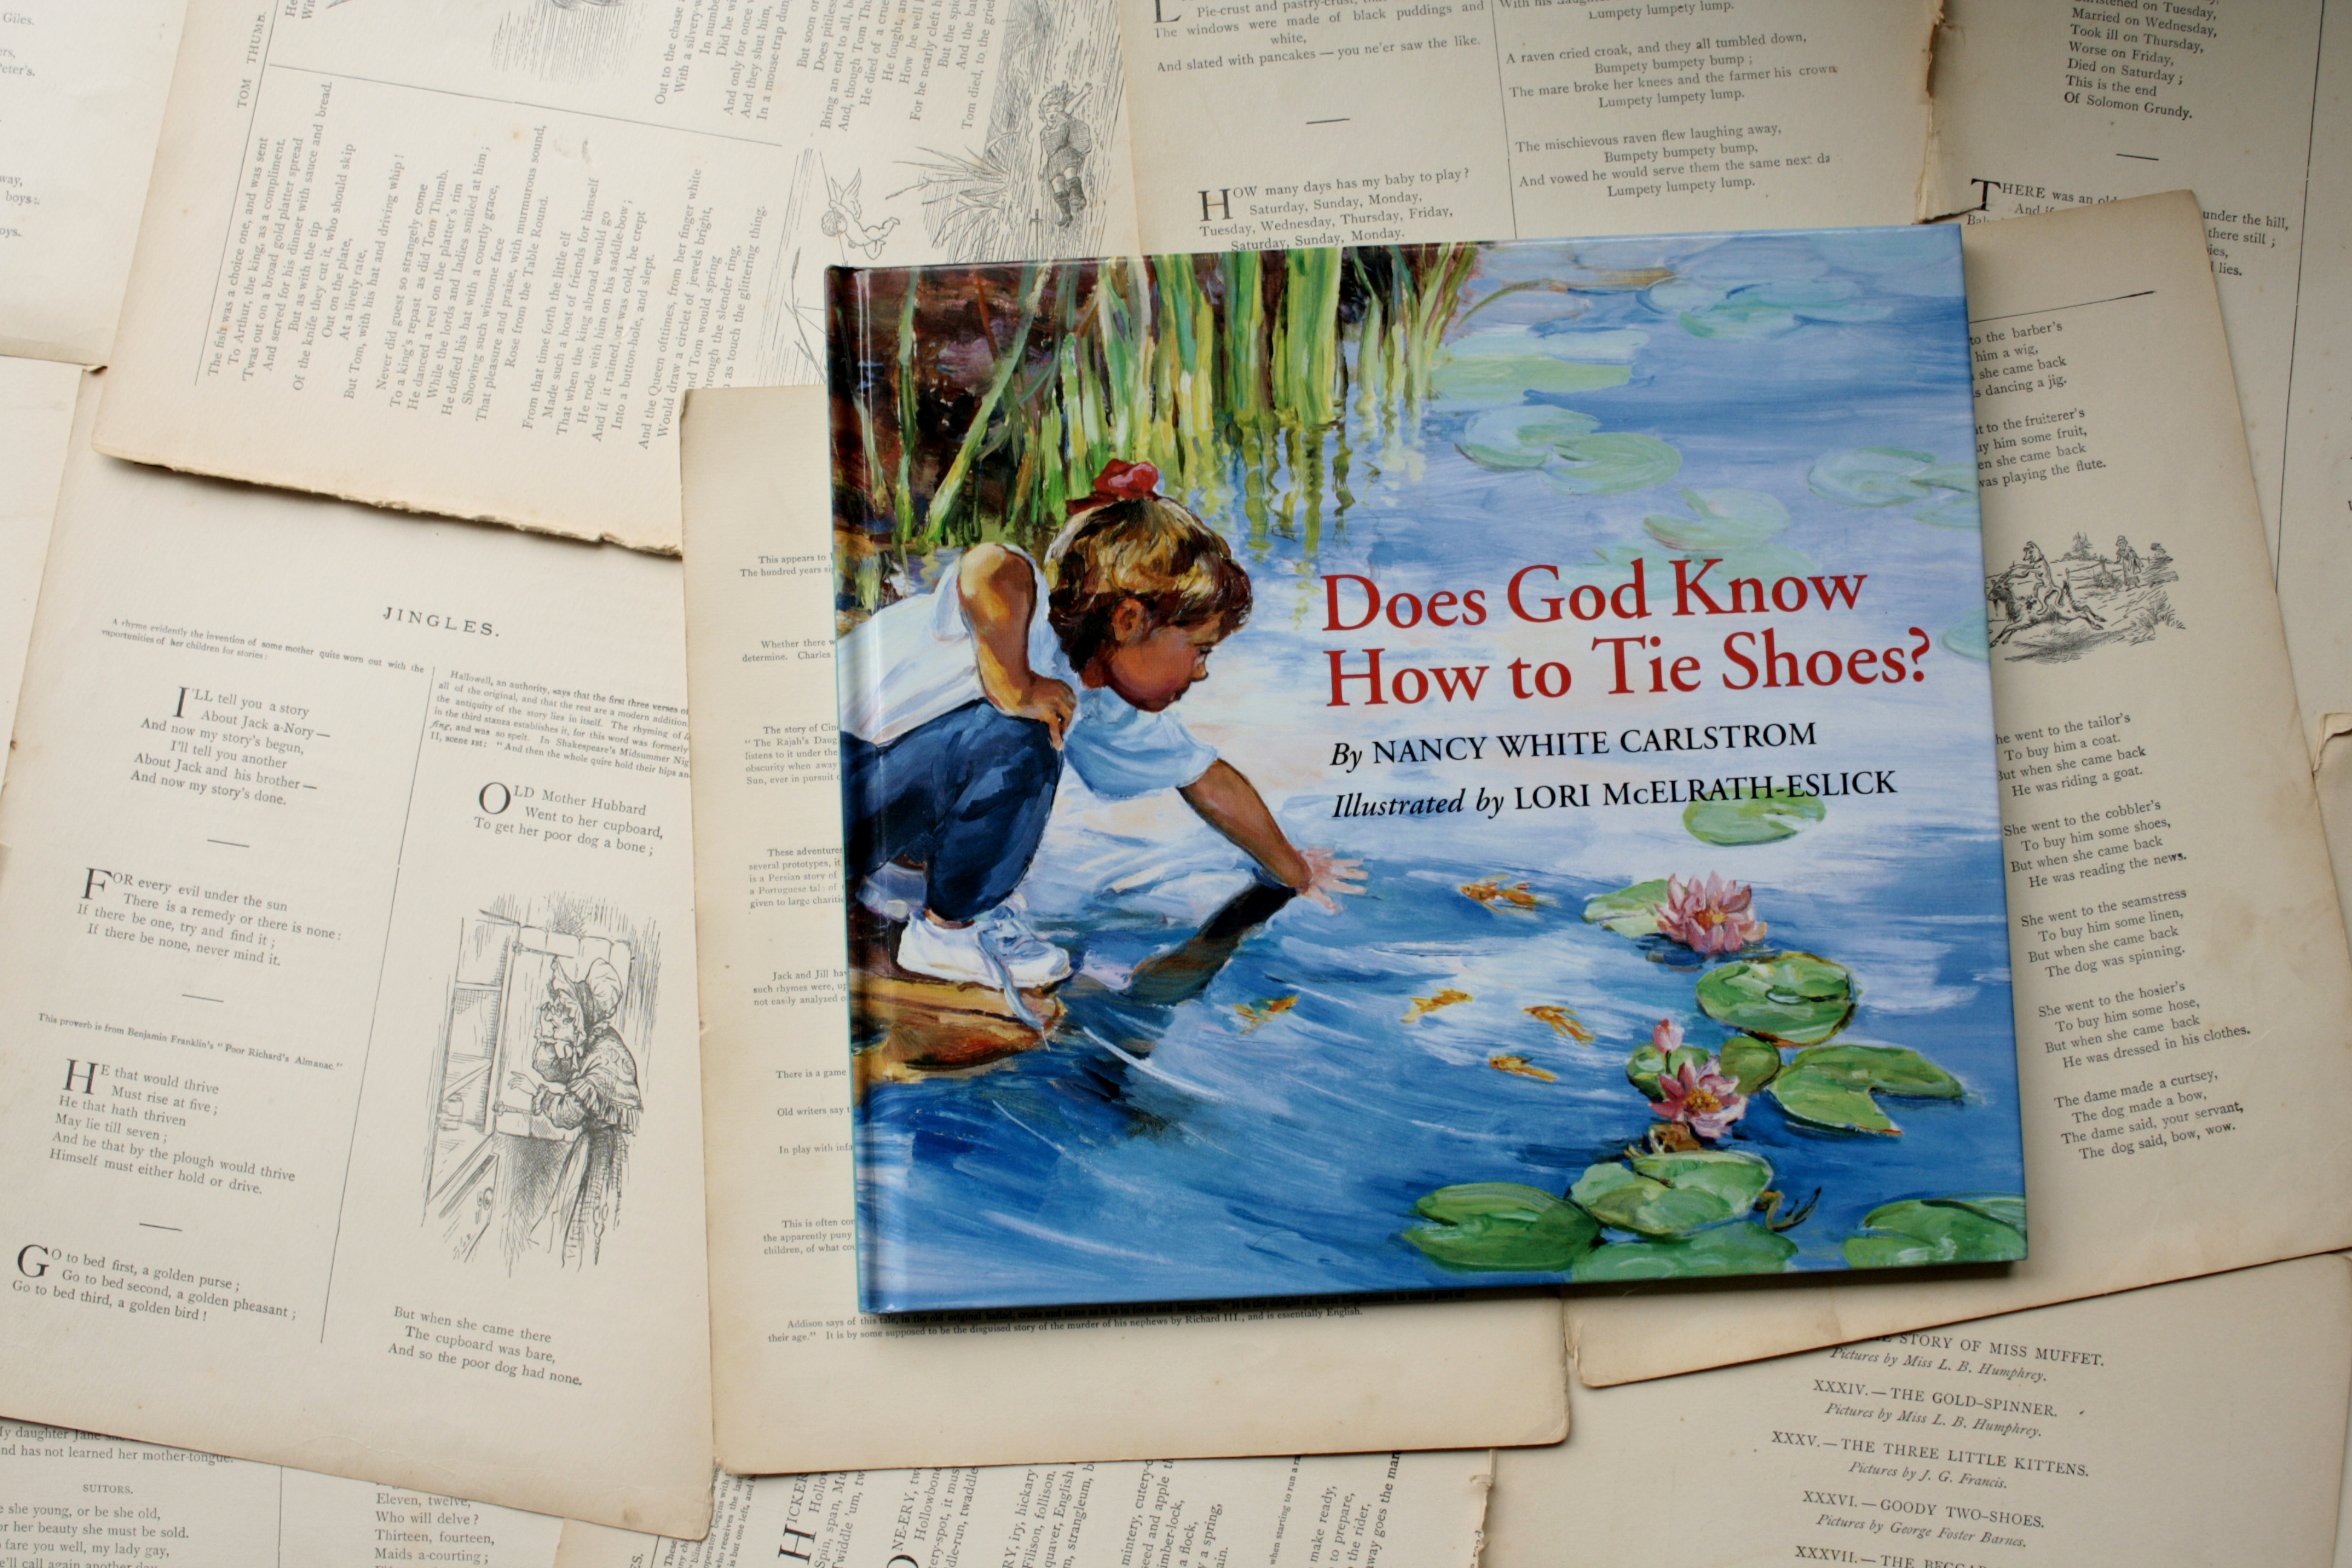 Does God Know How to Tie Shoes? | Nancy White Carlstrom